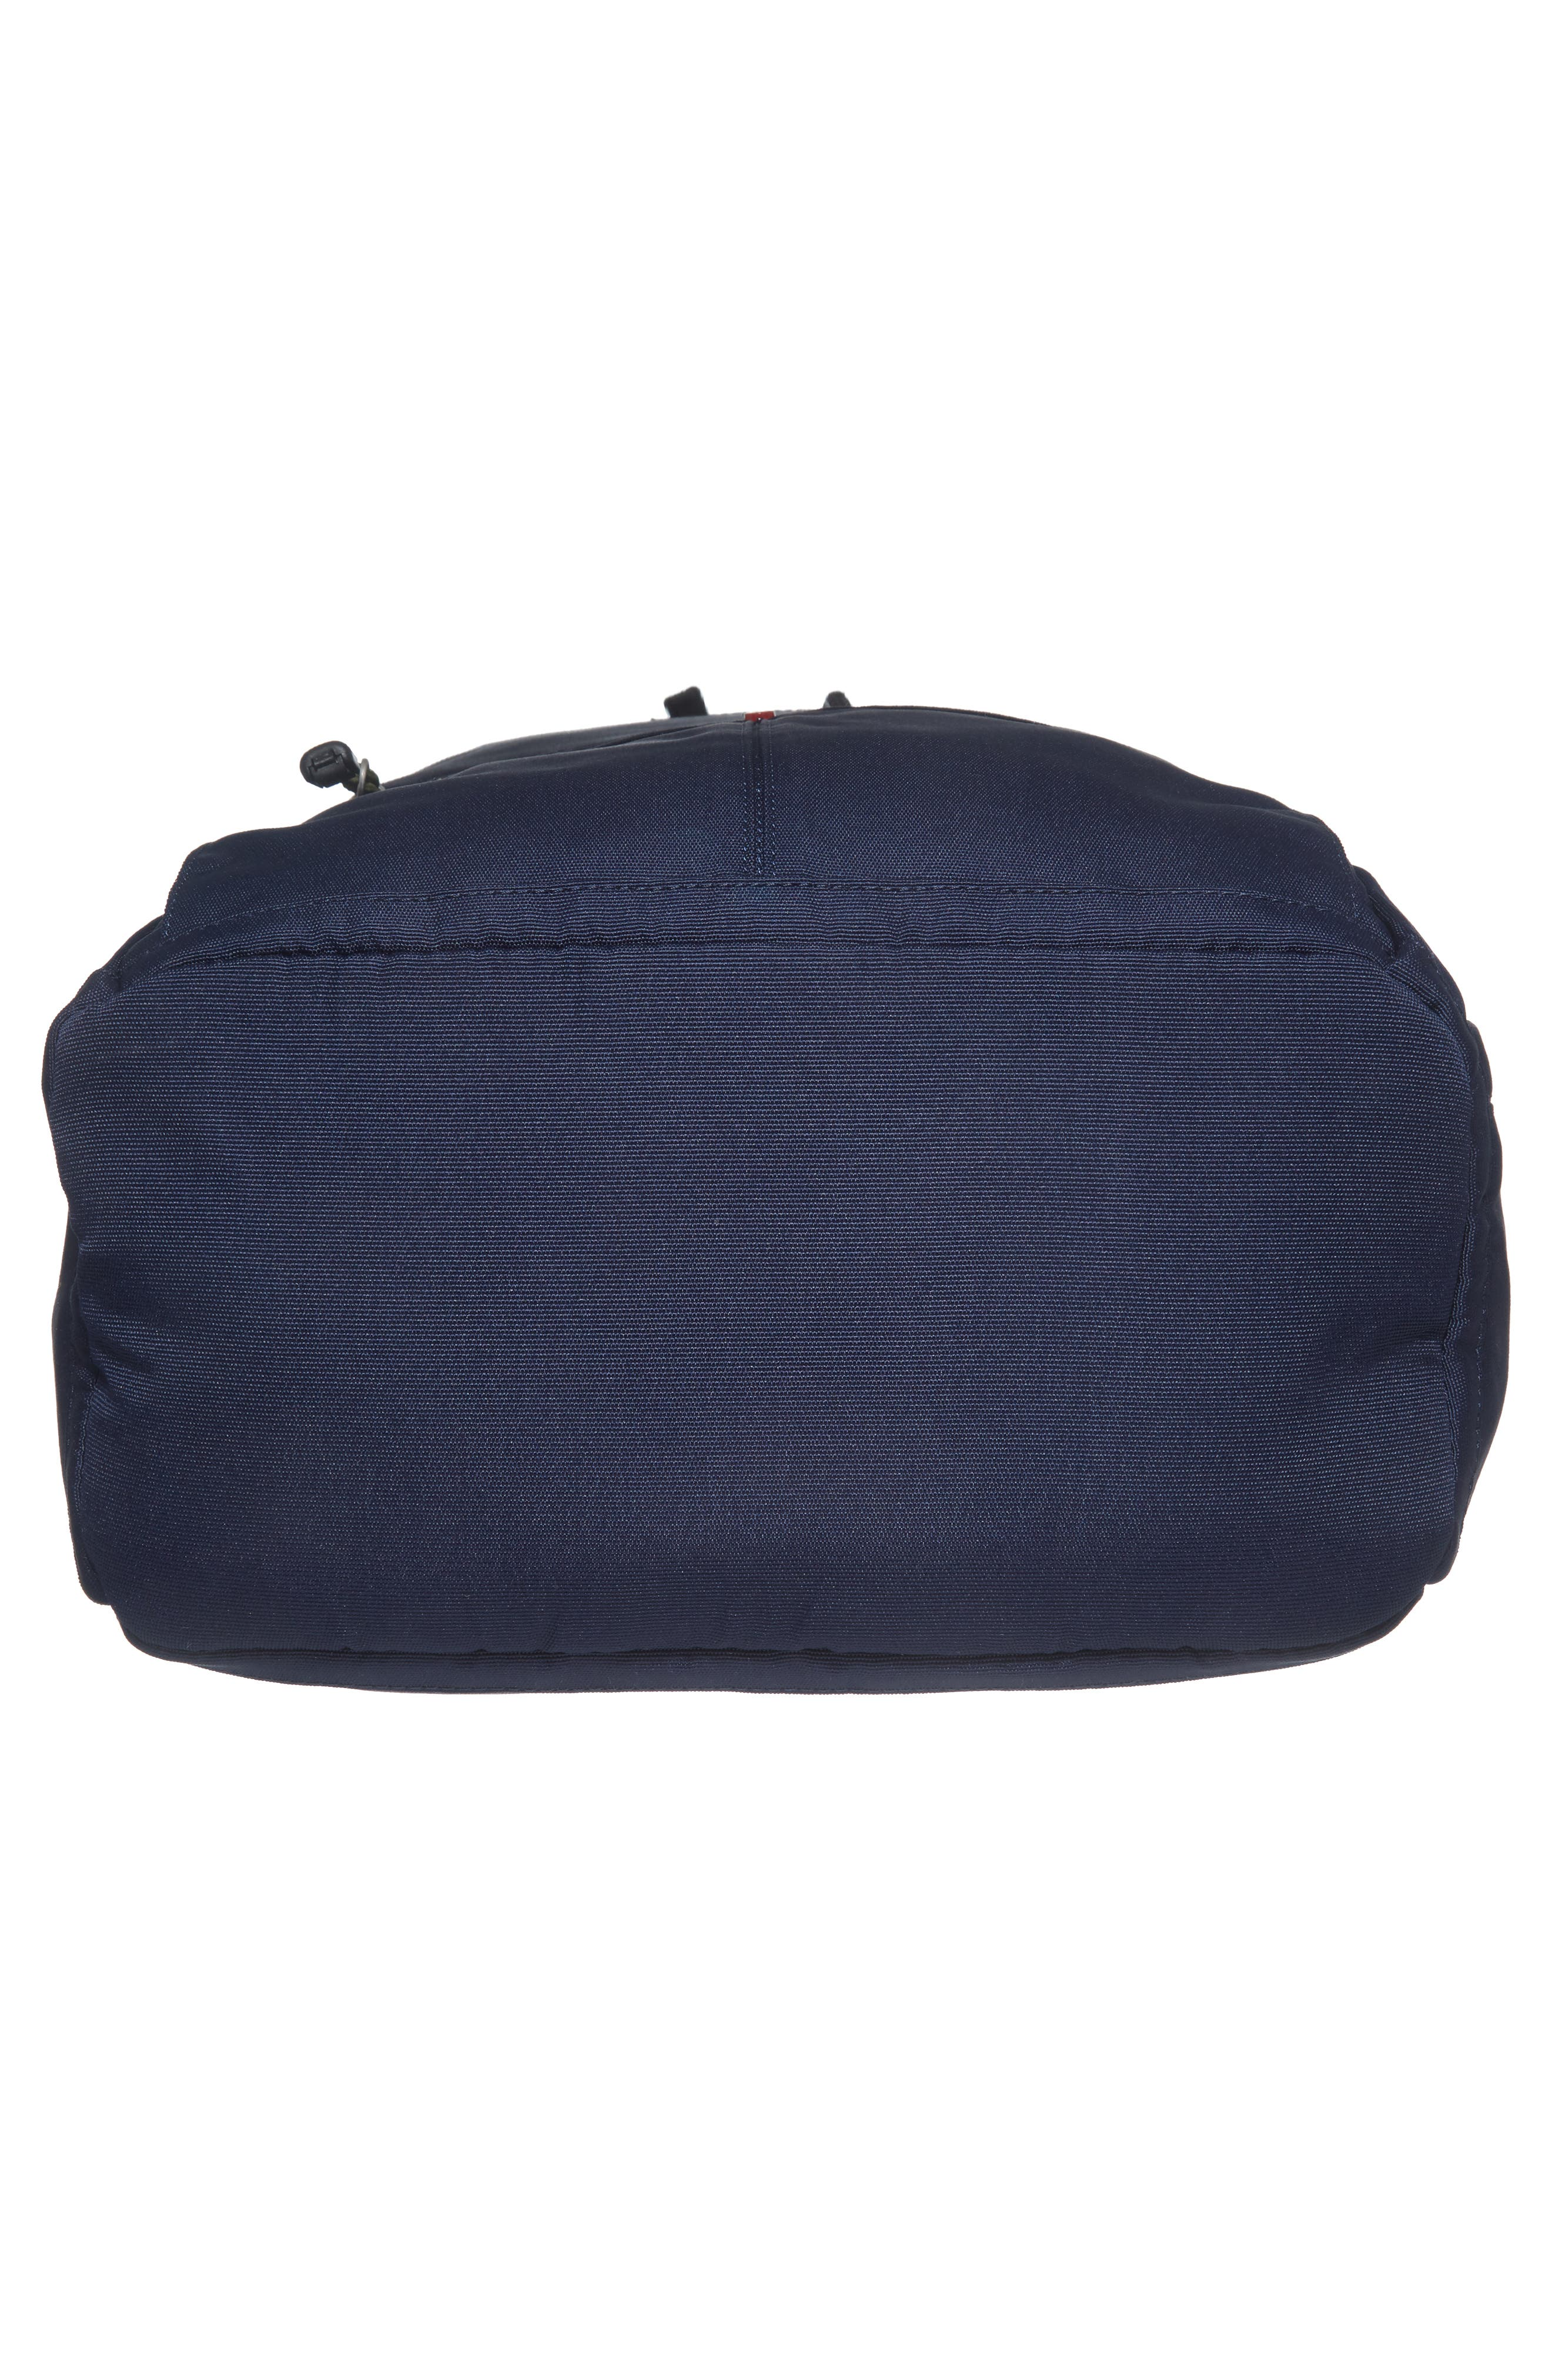 Williamsburg Bedford Backpack,                             Alternate thumbnail 6, color,                             Navy